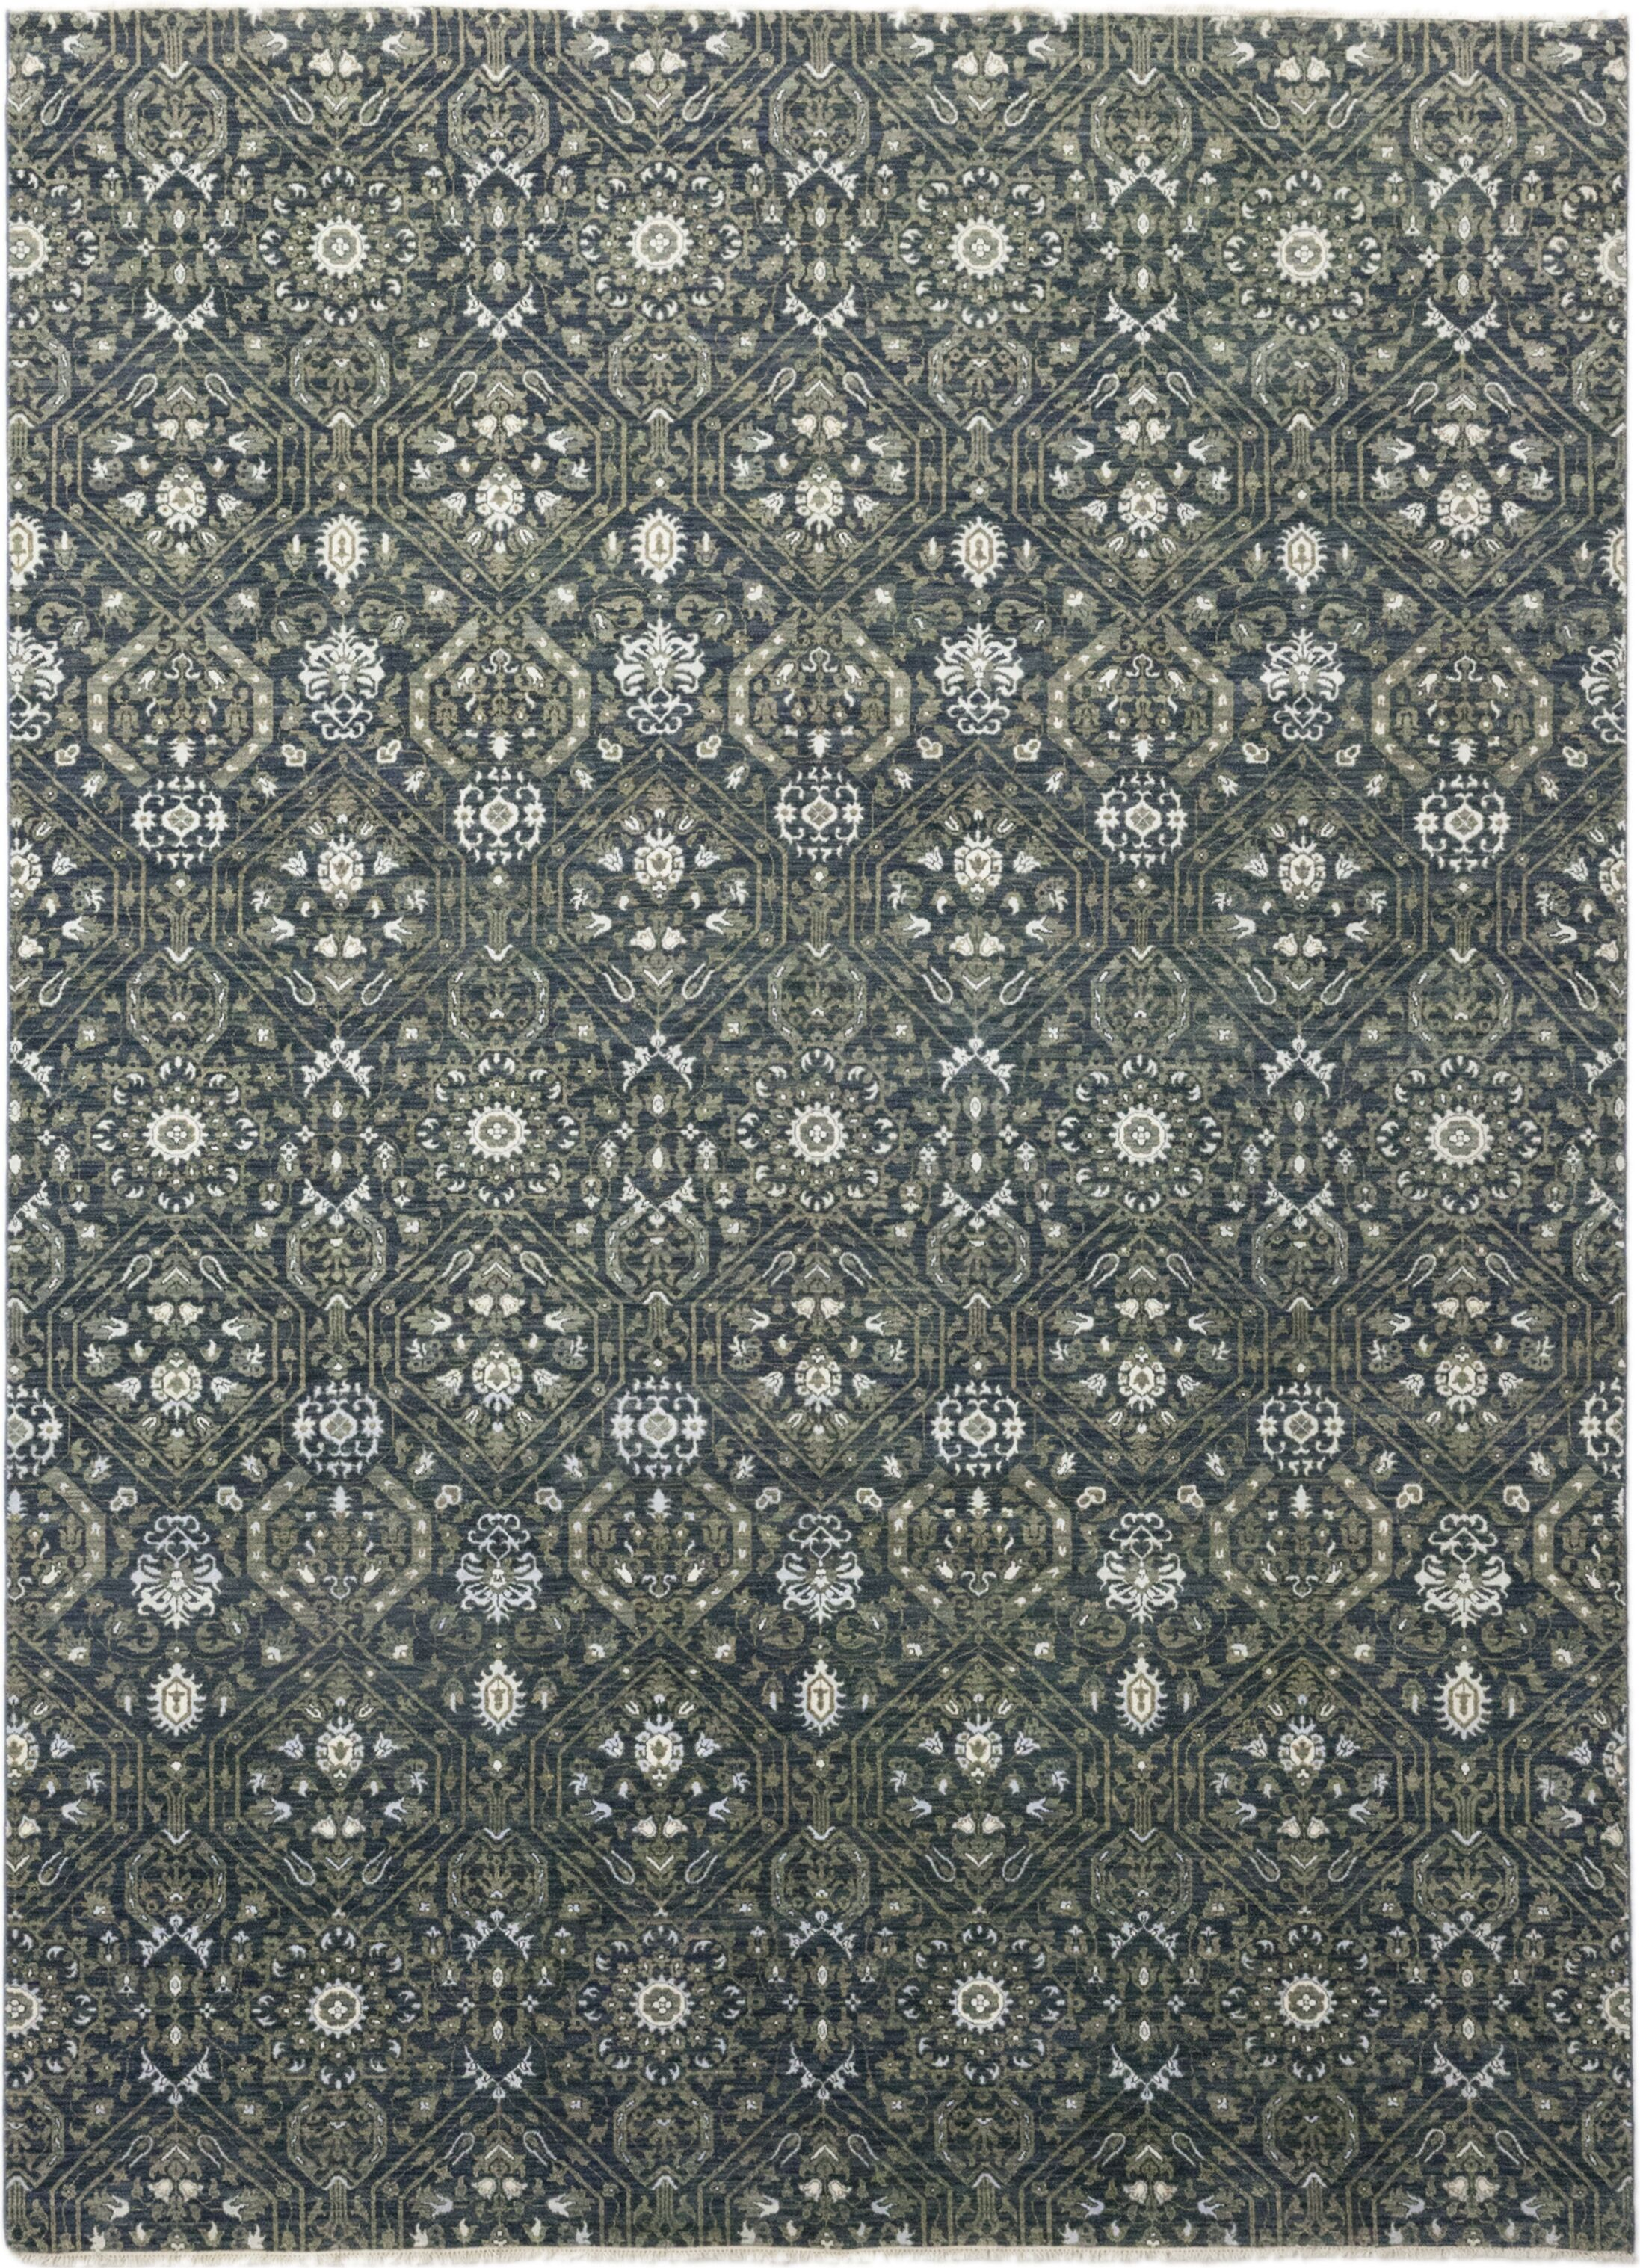 One-of-a-Kind Cote Hand-Knotted Wool/Silk Green/Gray Indoor Area Rug